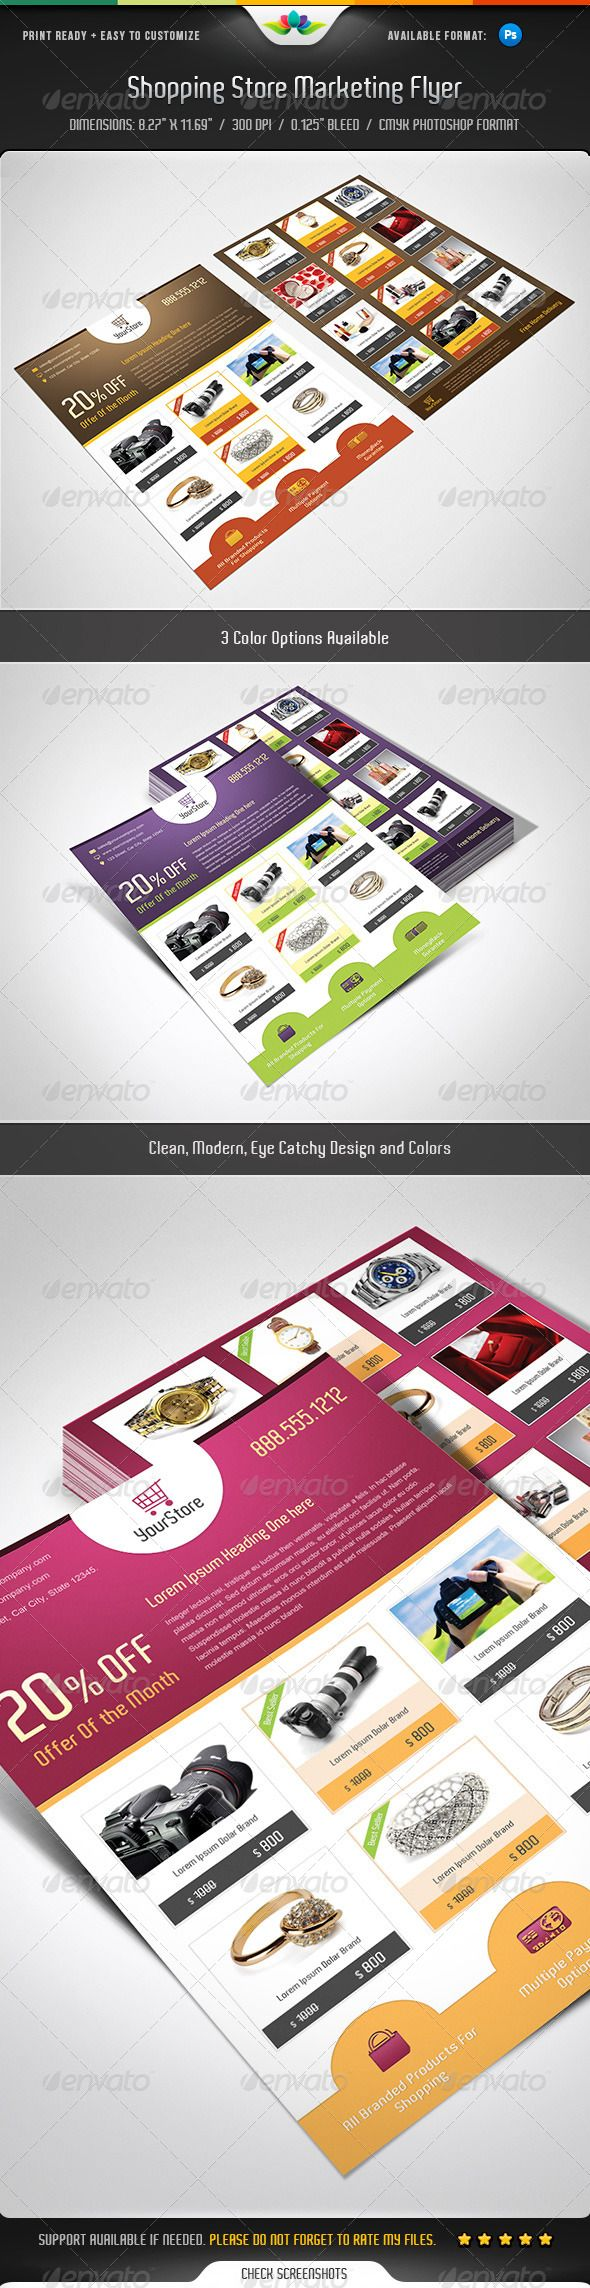 best images about marketing flyer shopping store marketing flyer